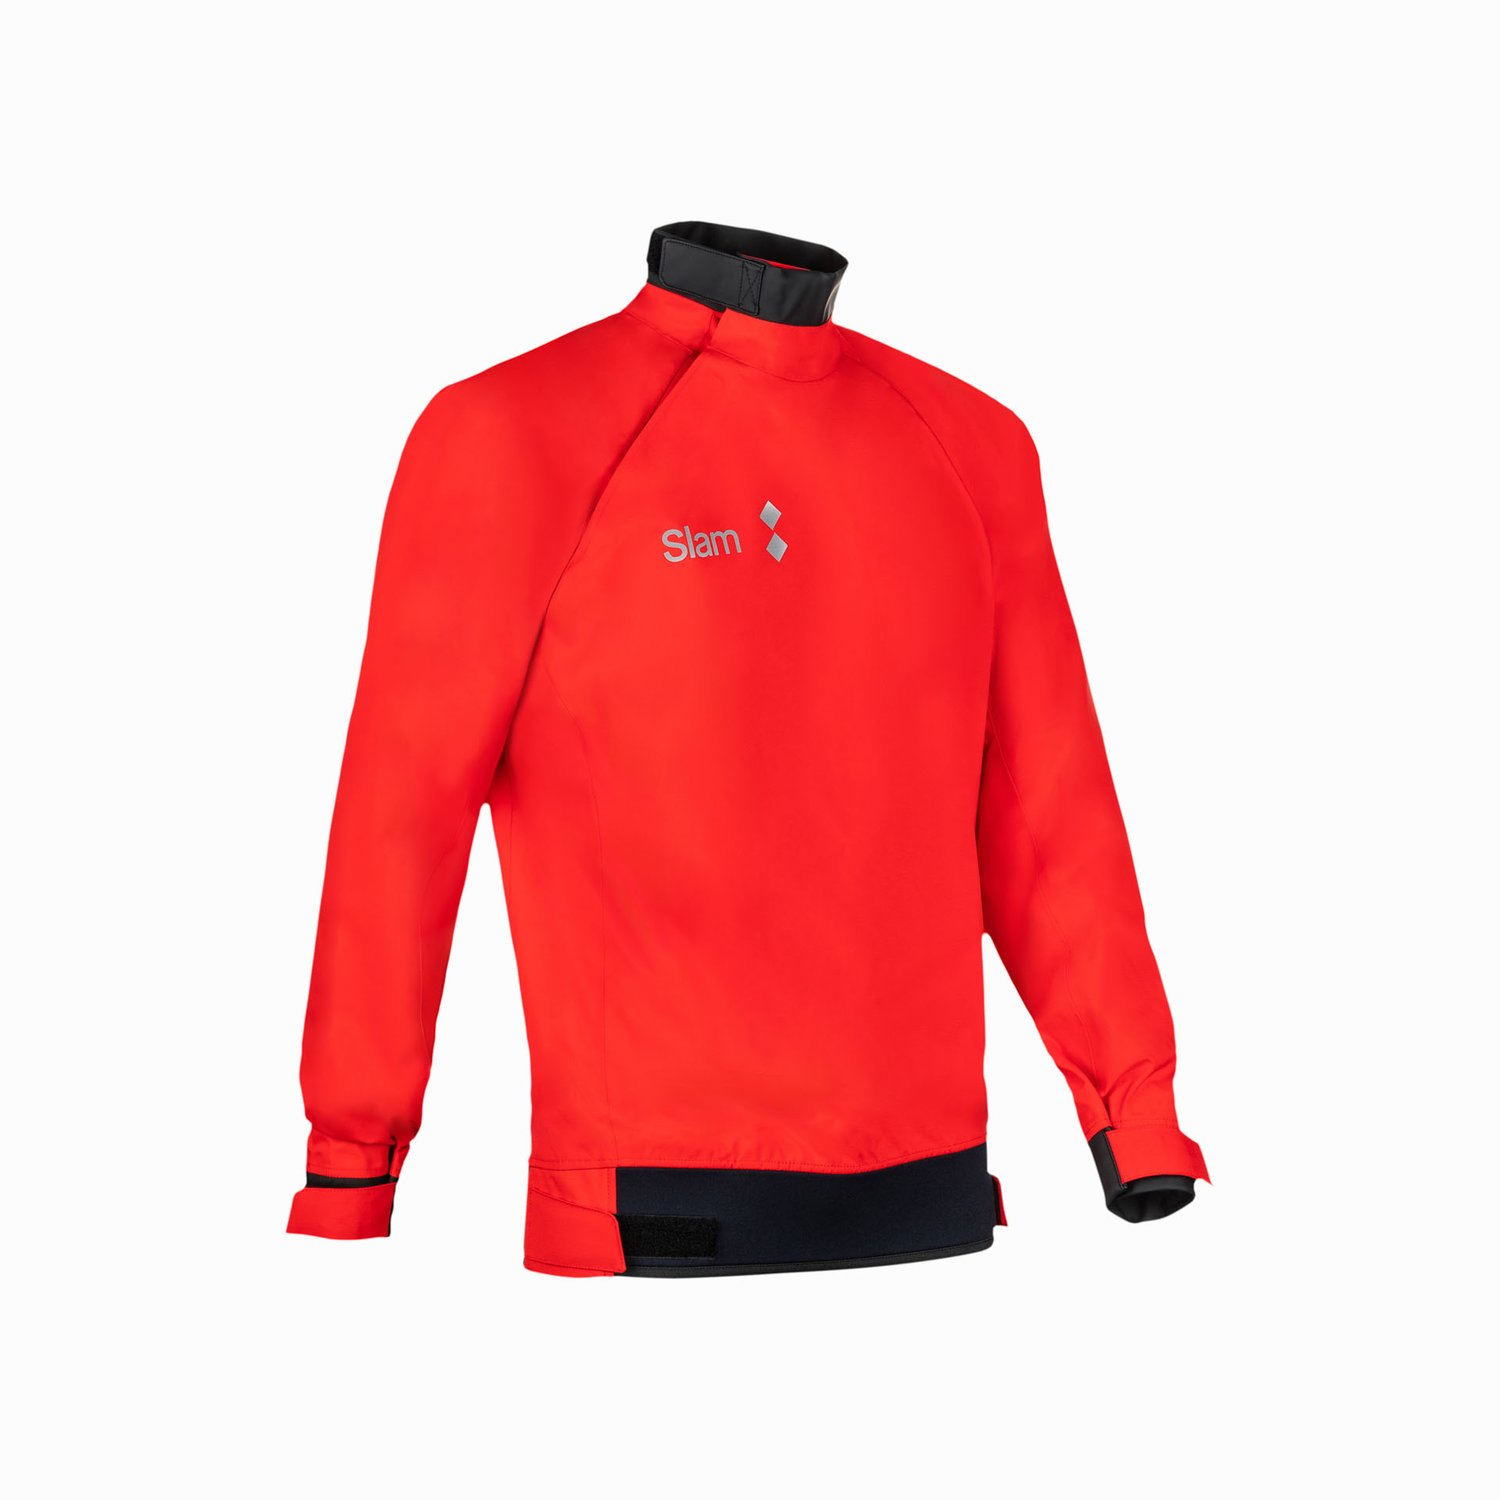 WIN-D 1 SAILING SPRAY TOP - Slam Red